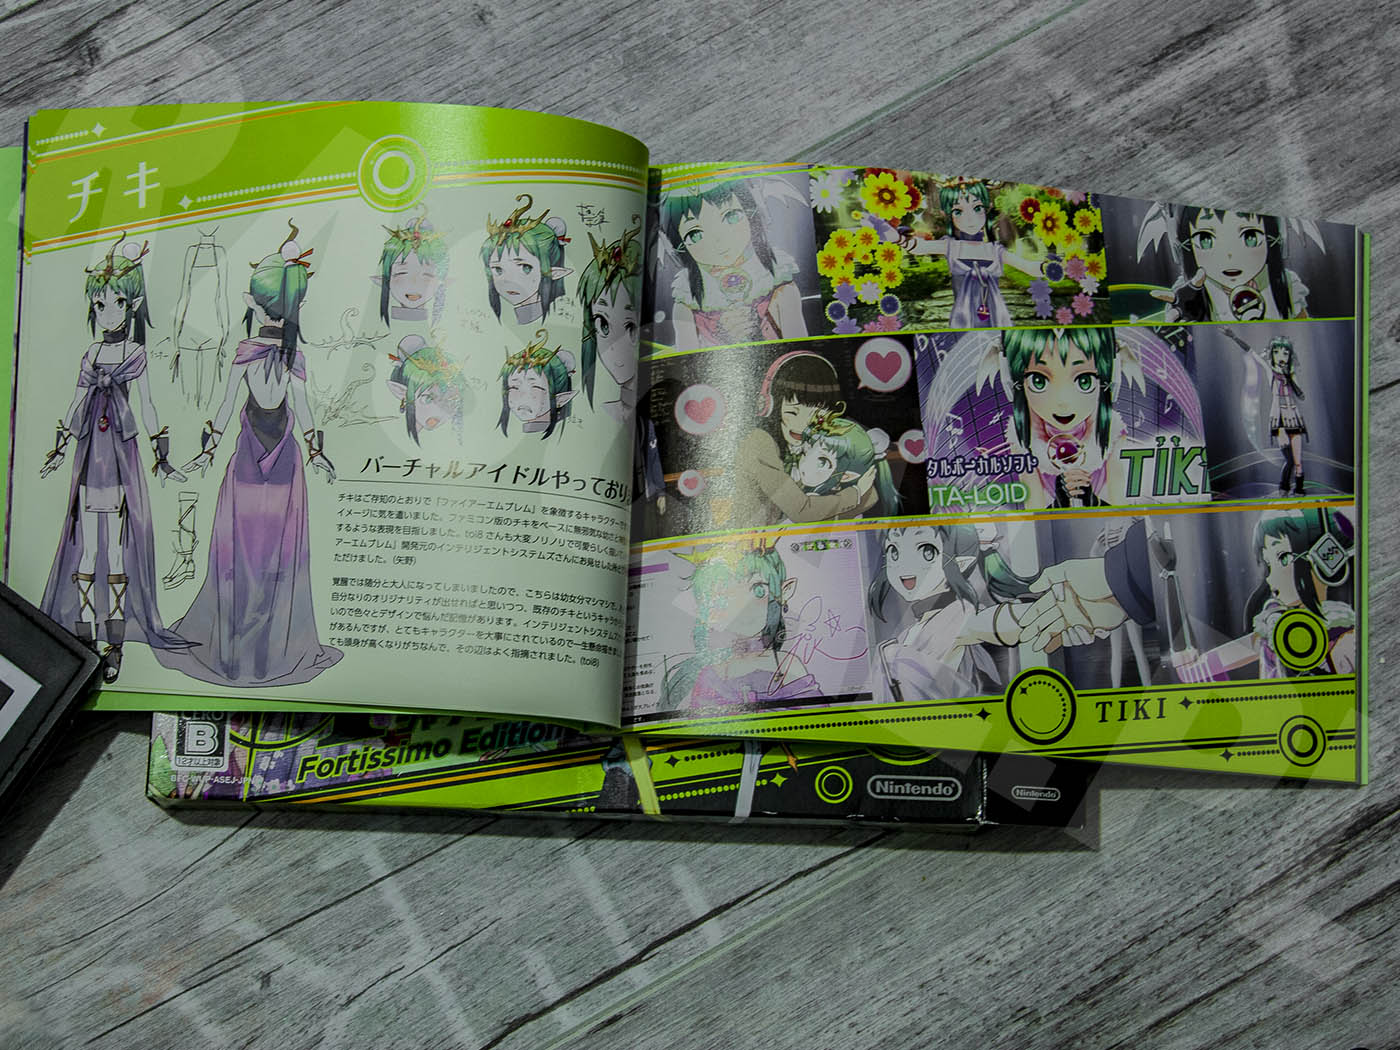 Tokyo Mirage Sessions #FE Fortissimo Edition 2015 - Artbook - Tiki